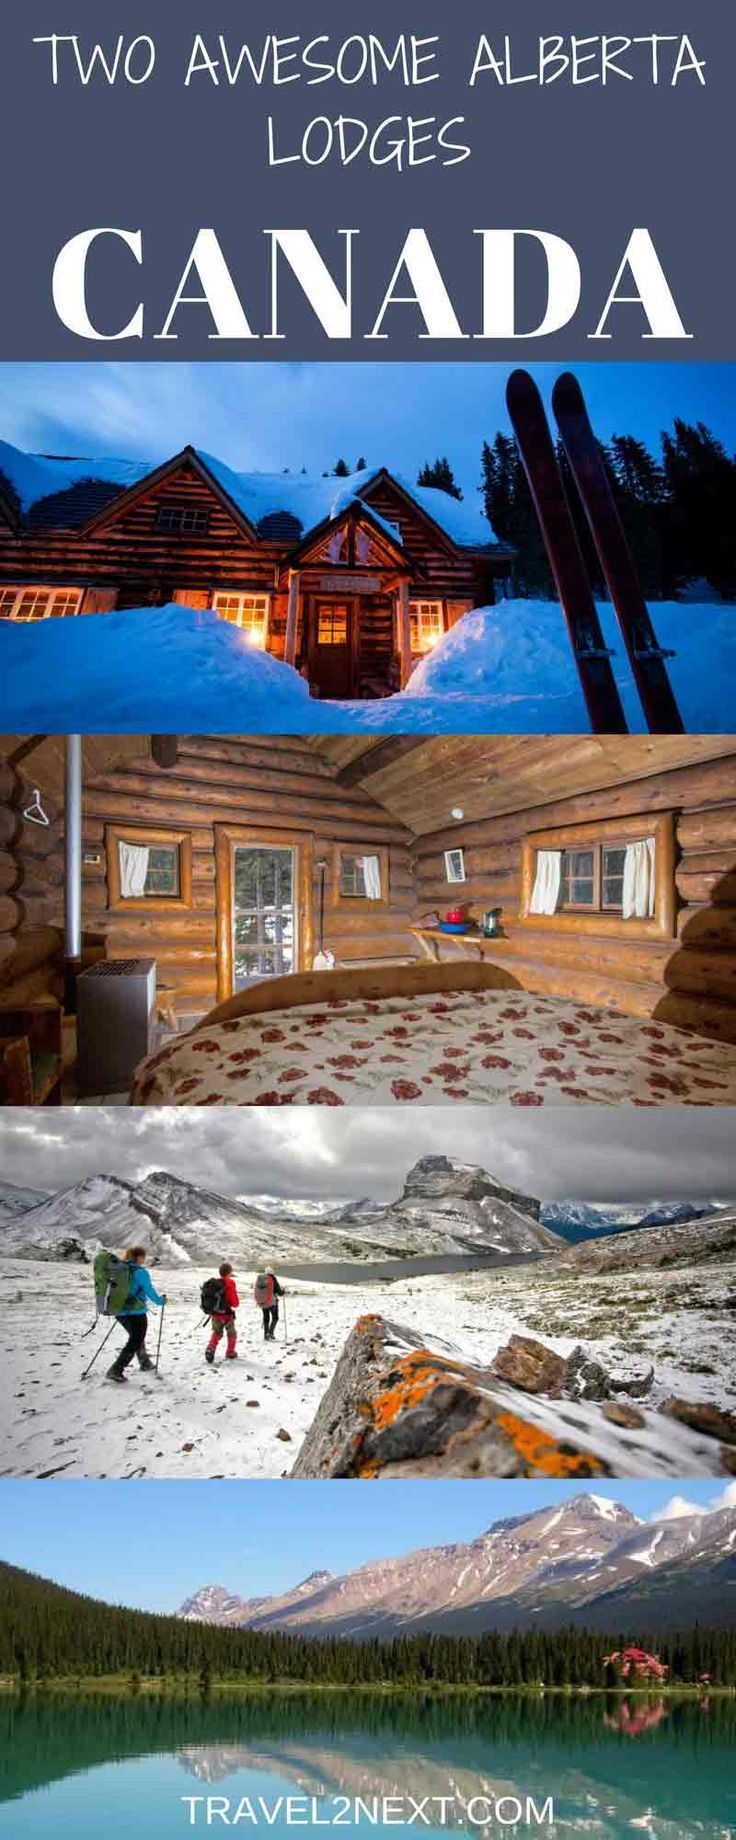 two awesome alberta lodges